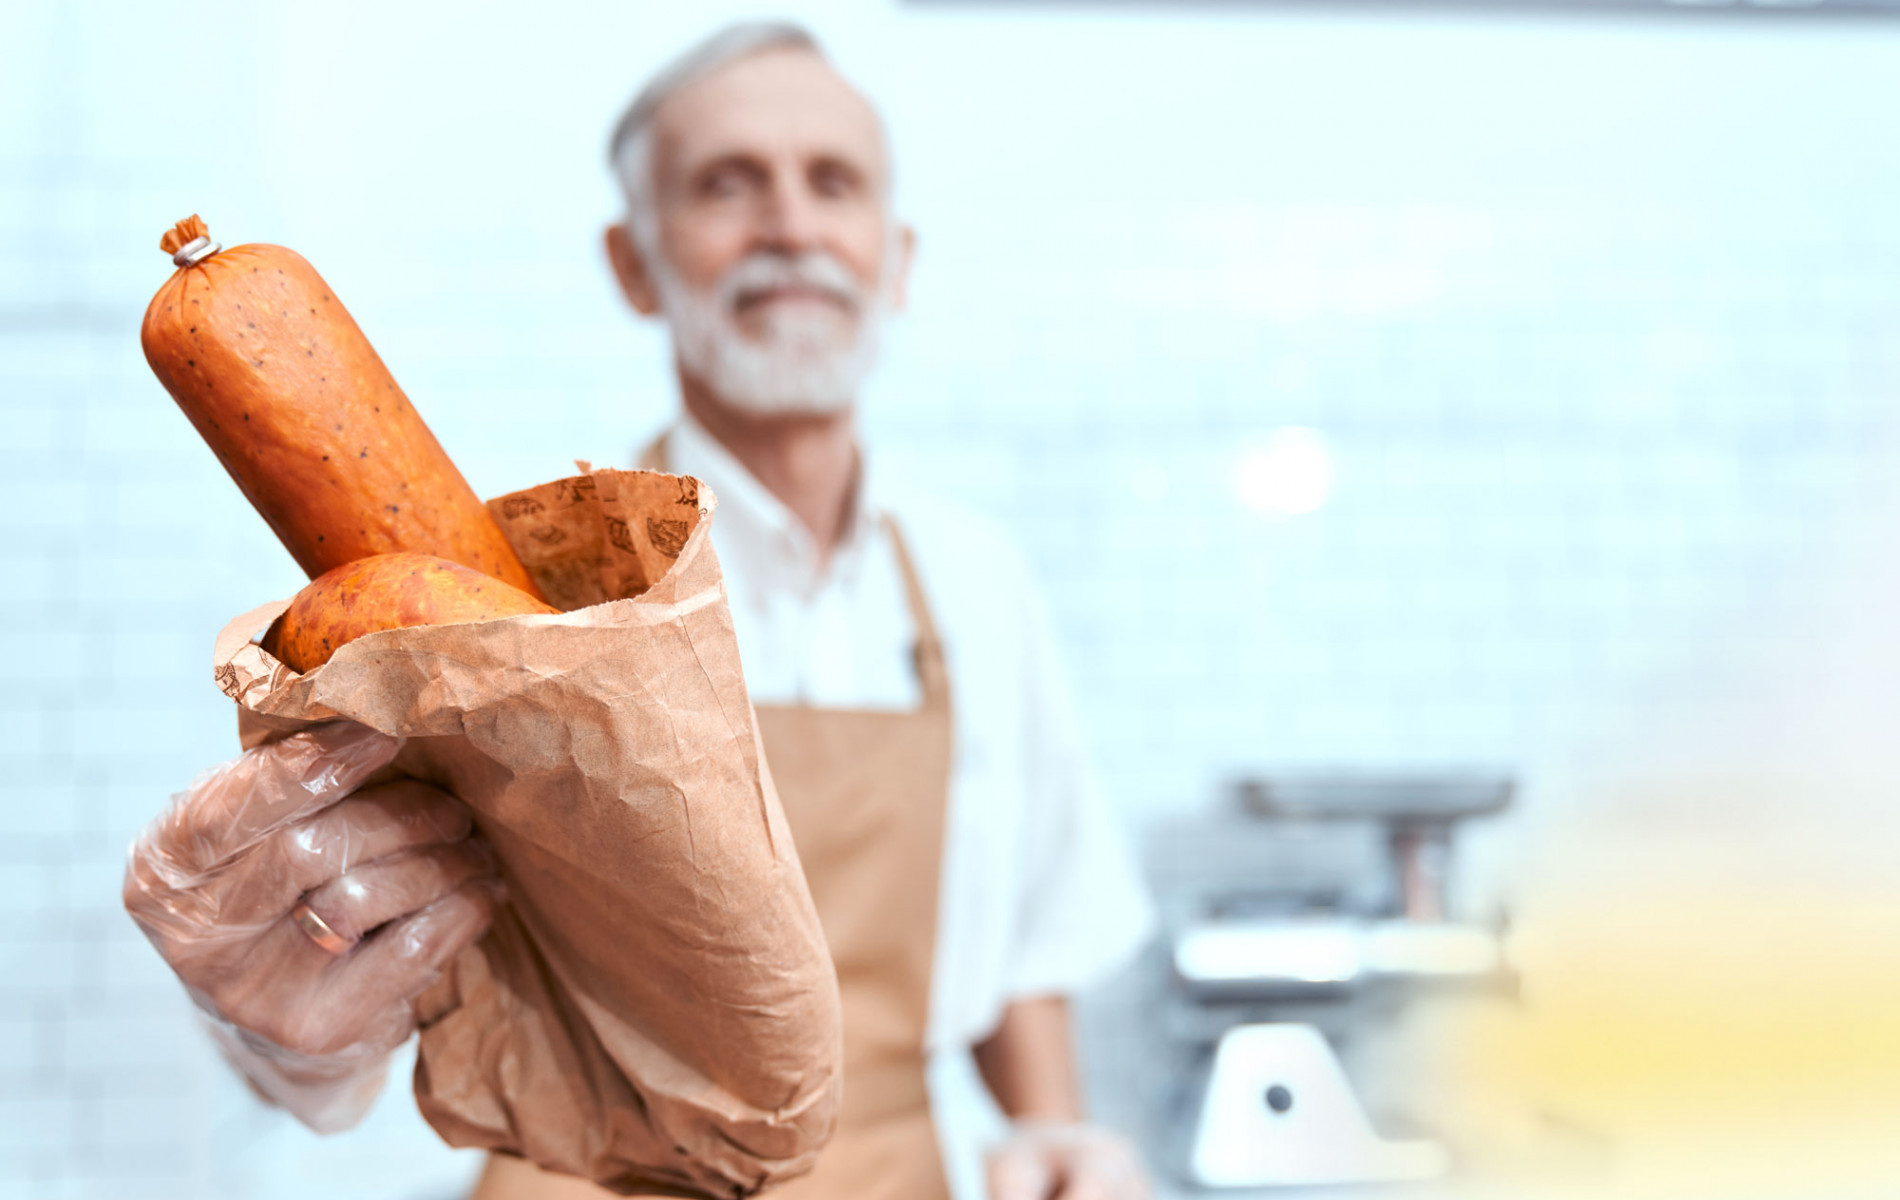 Man holding clipped sausage